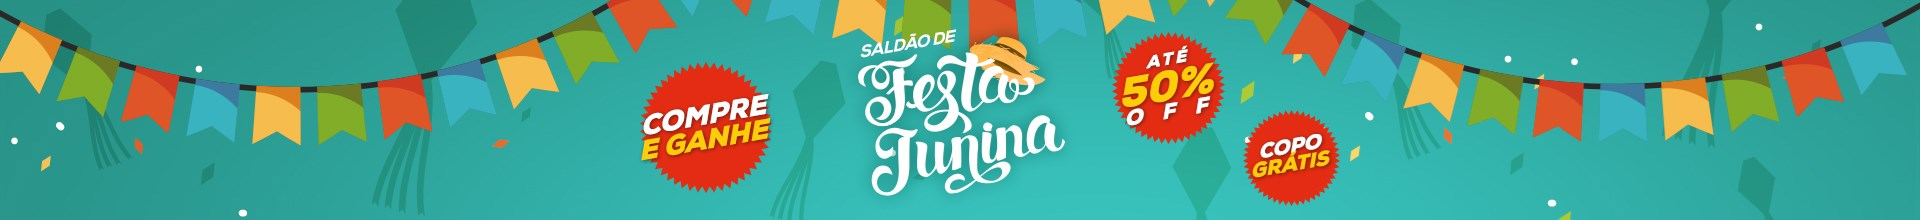 Festa Junina do Clube